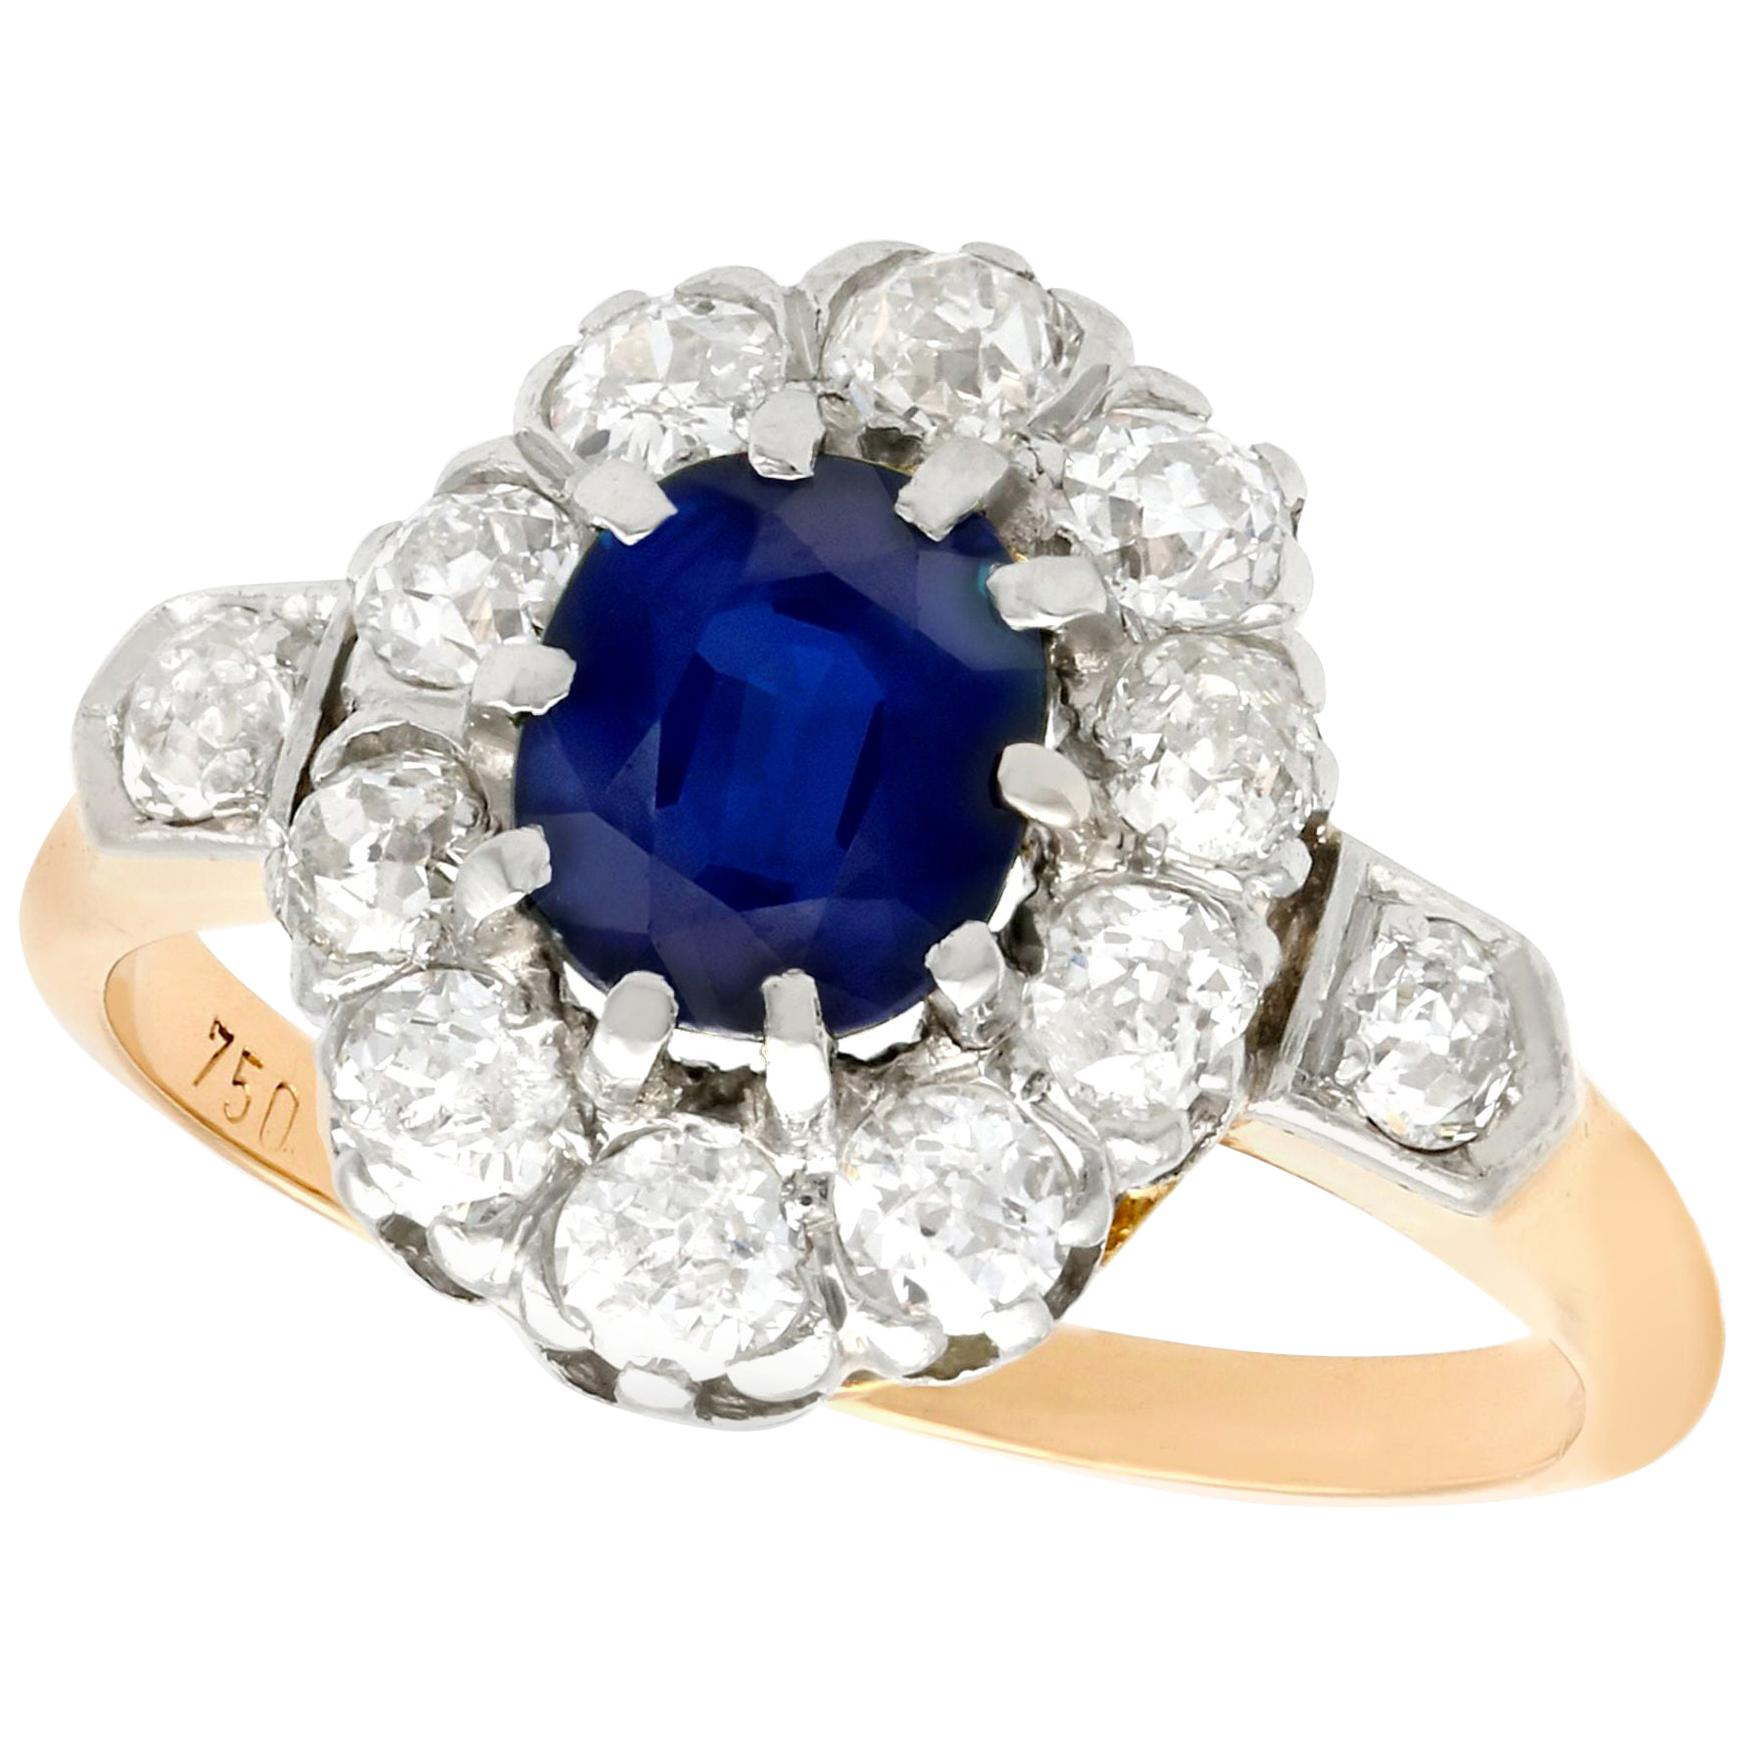 1910s 1.18 Carat Sapphire and Diamond Yellow Gold Cluster Ring